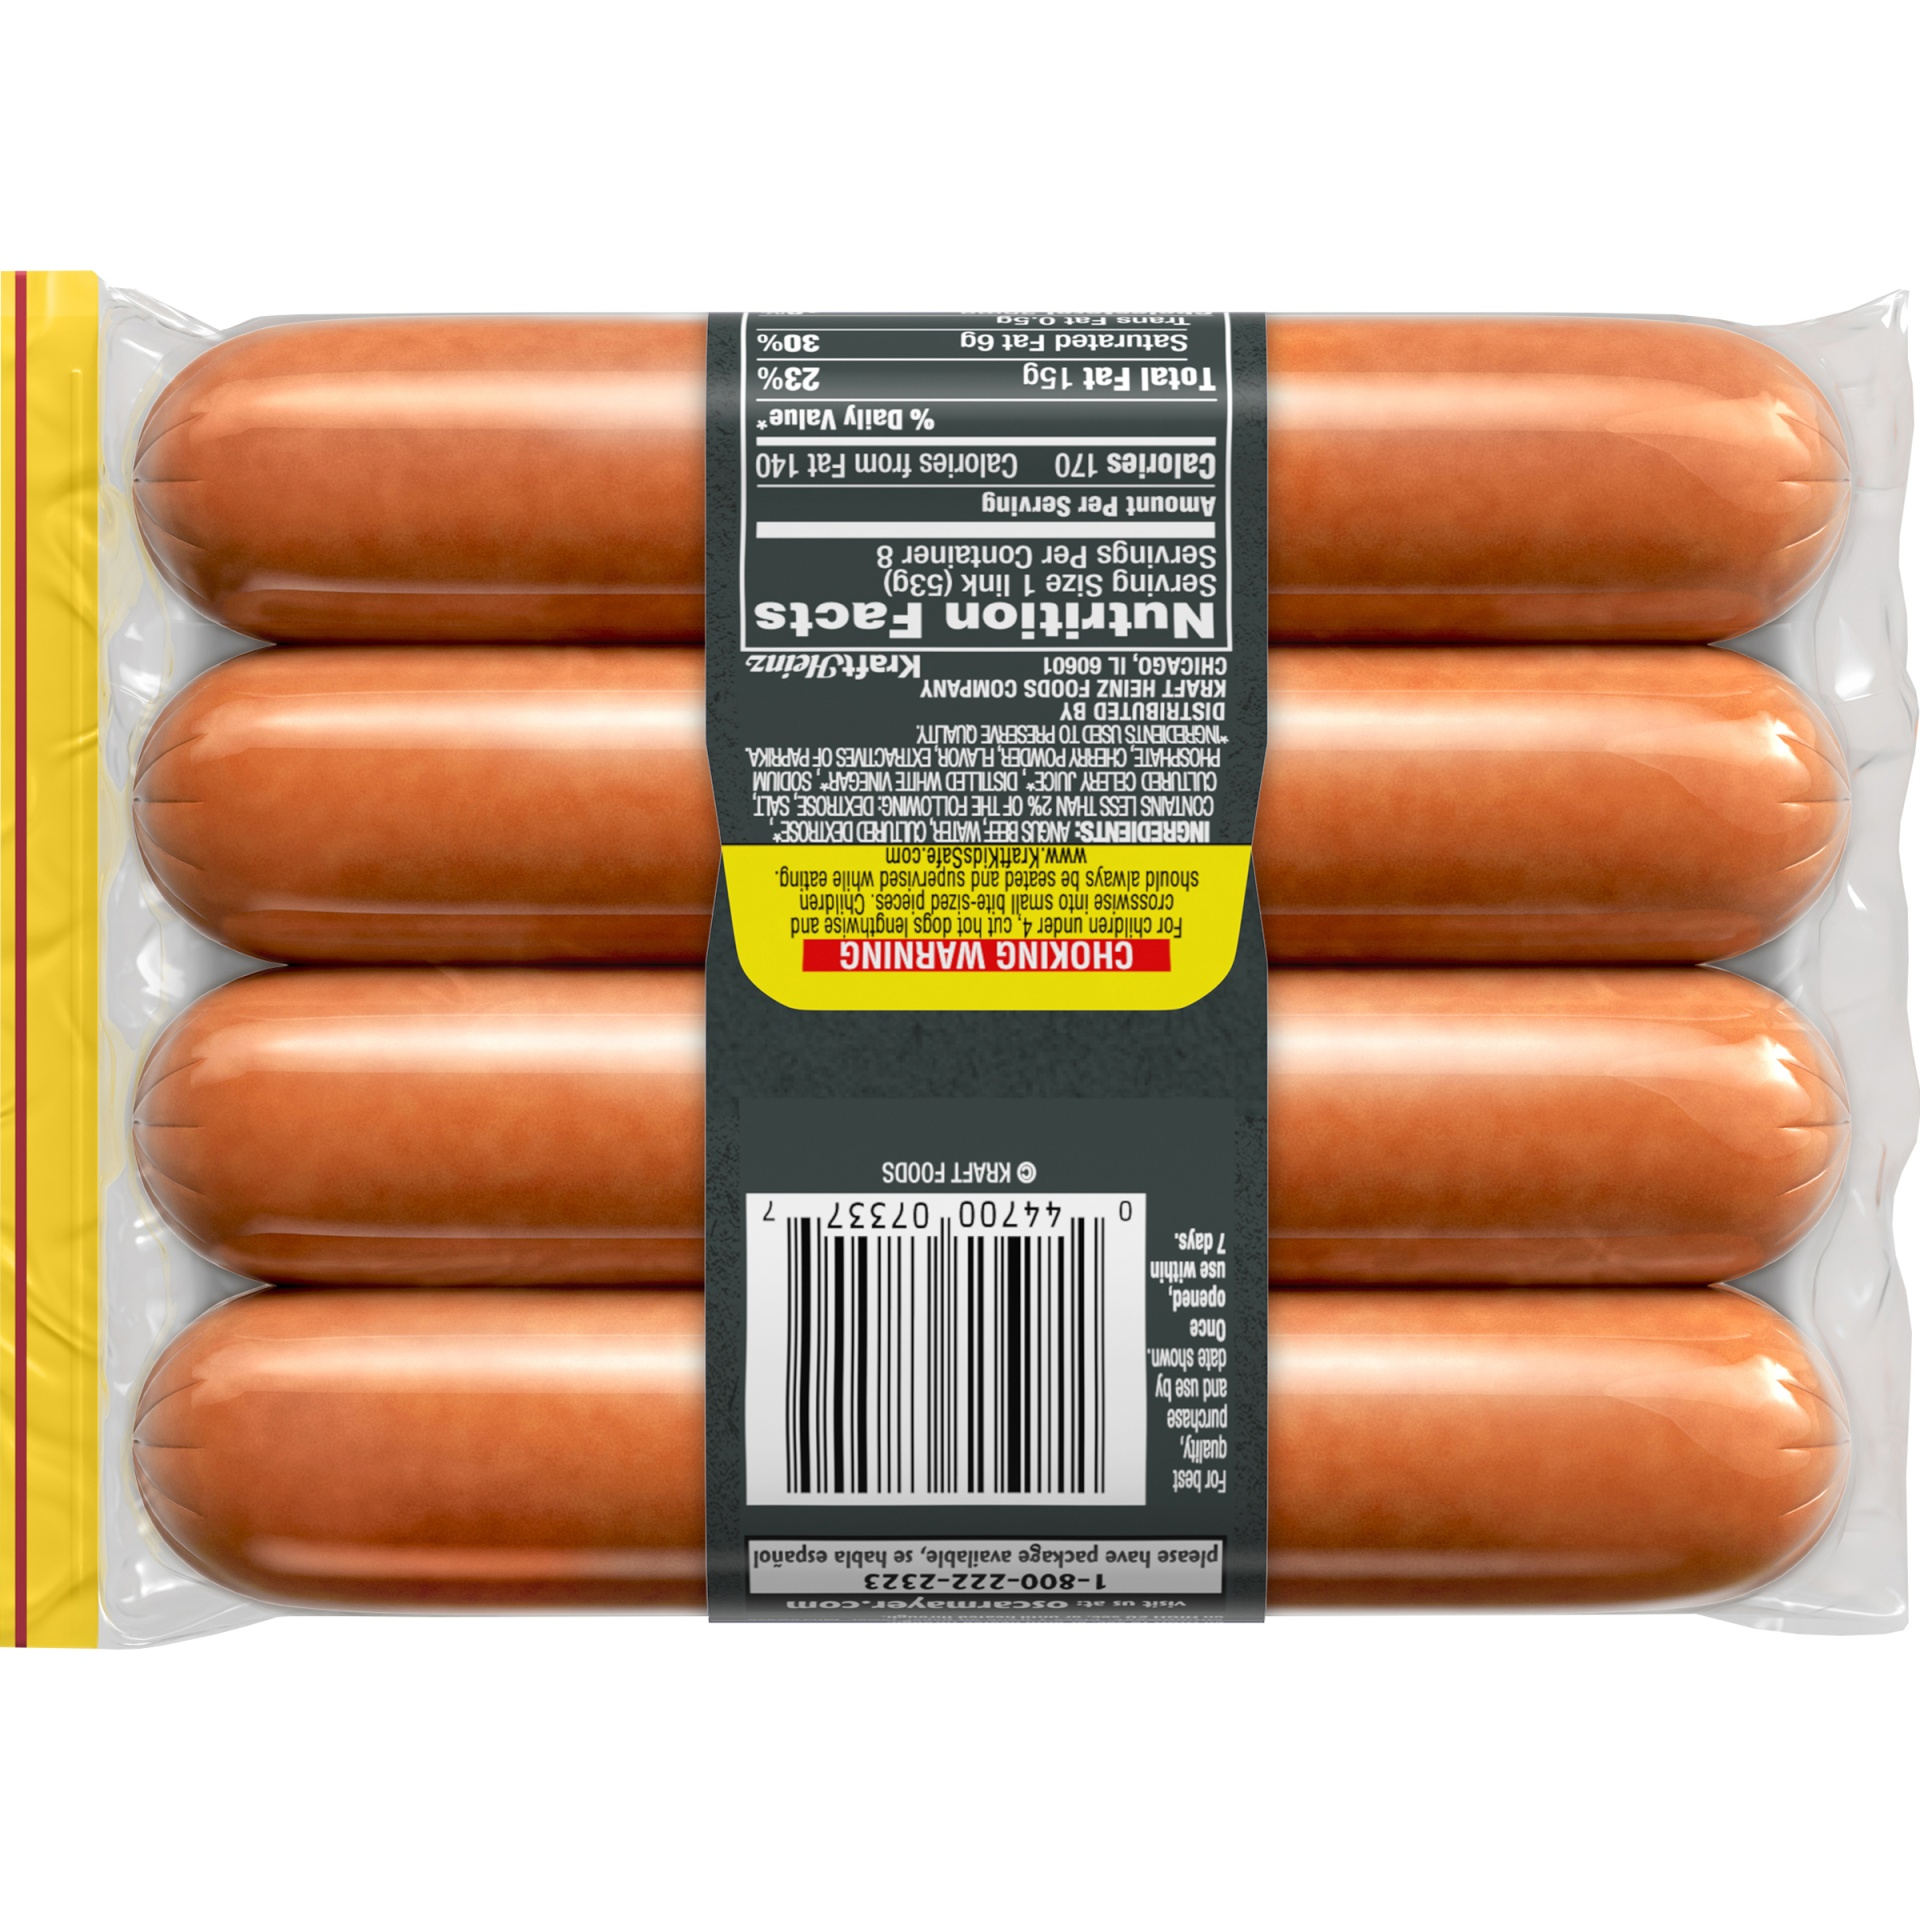 slide 11 of 13, Oscar Mayer Jumbo Angus Beef Uncured Franks 15 oz,